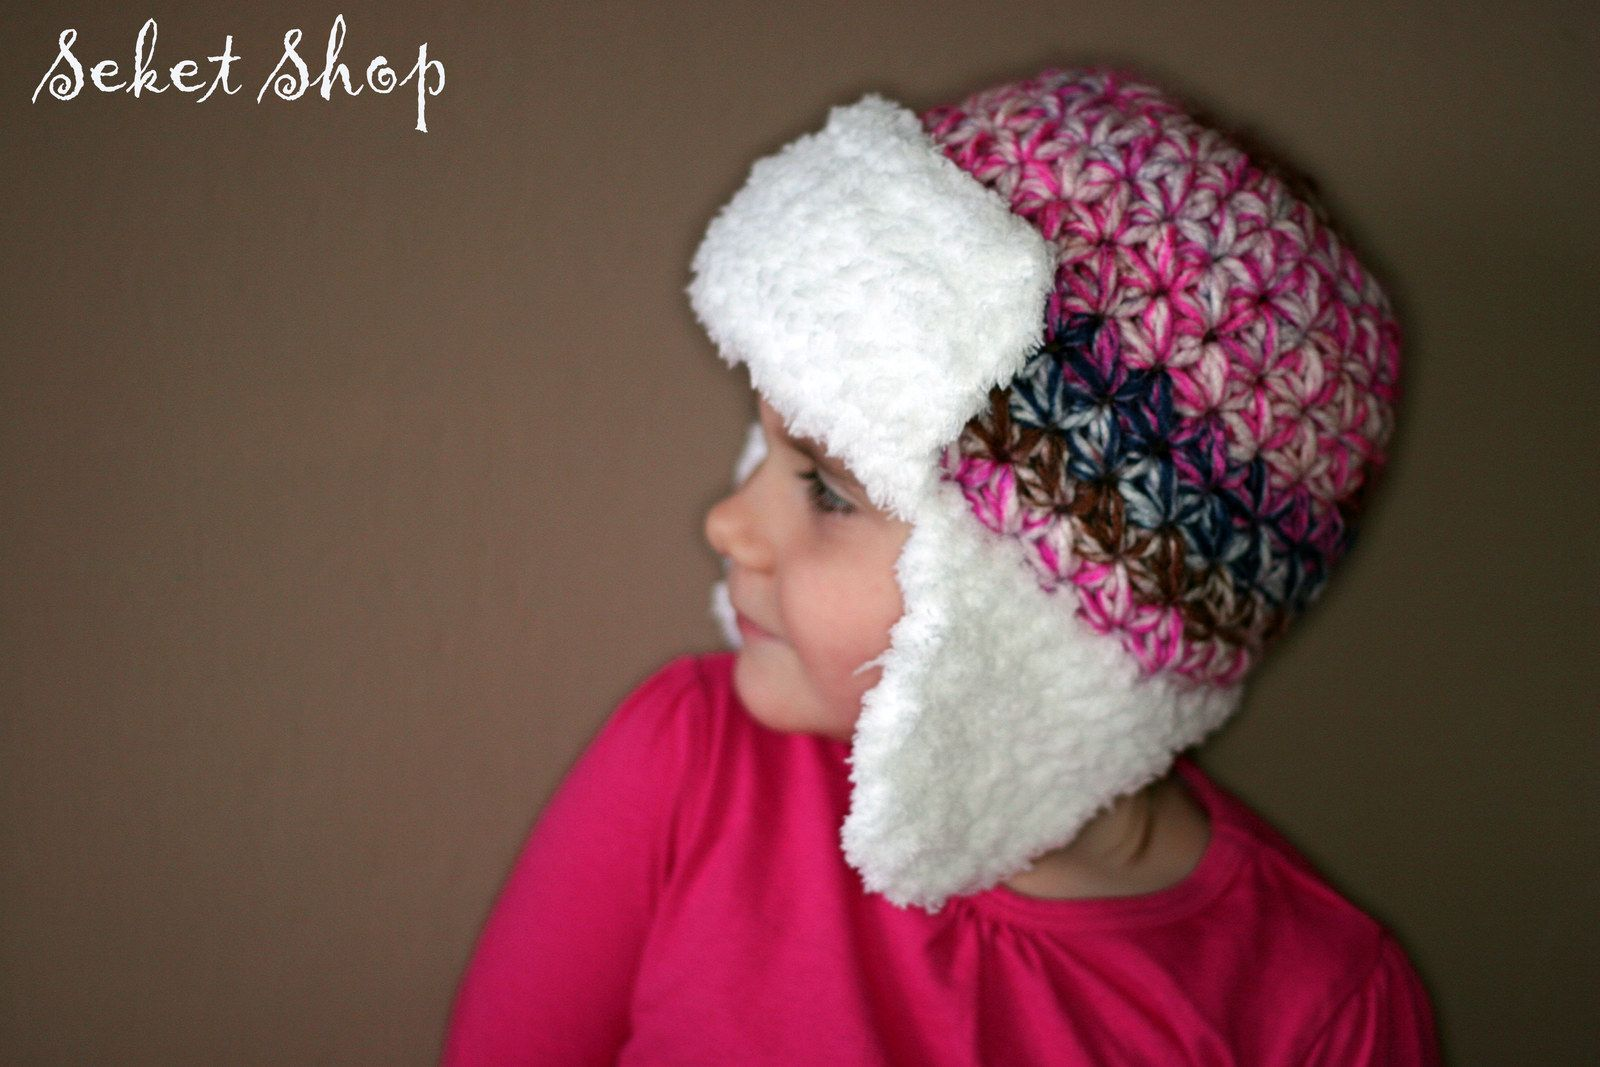 Crochet chunky beanie. Worming kids earflap cap with snowflake ornaments.